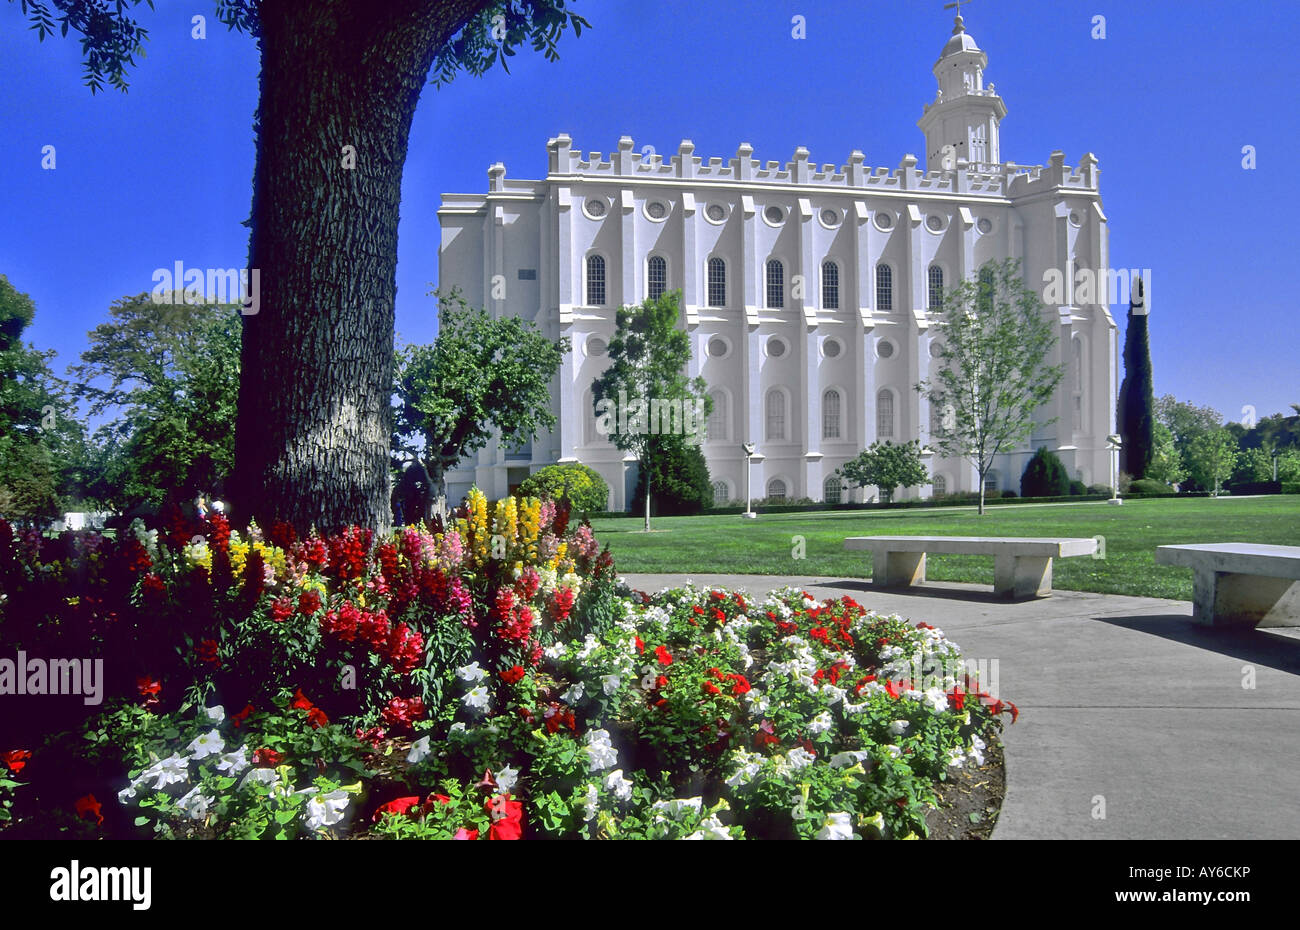 The Mormon Temple at St. George, Utah State, USA - Stock Image